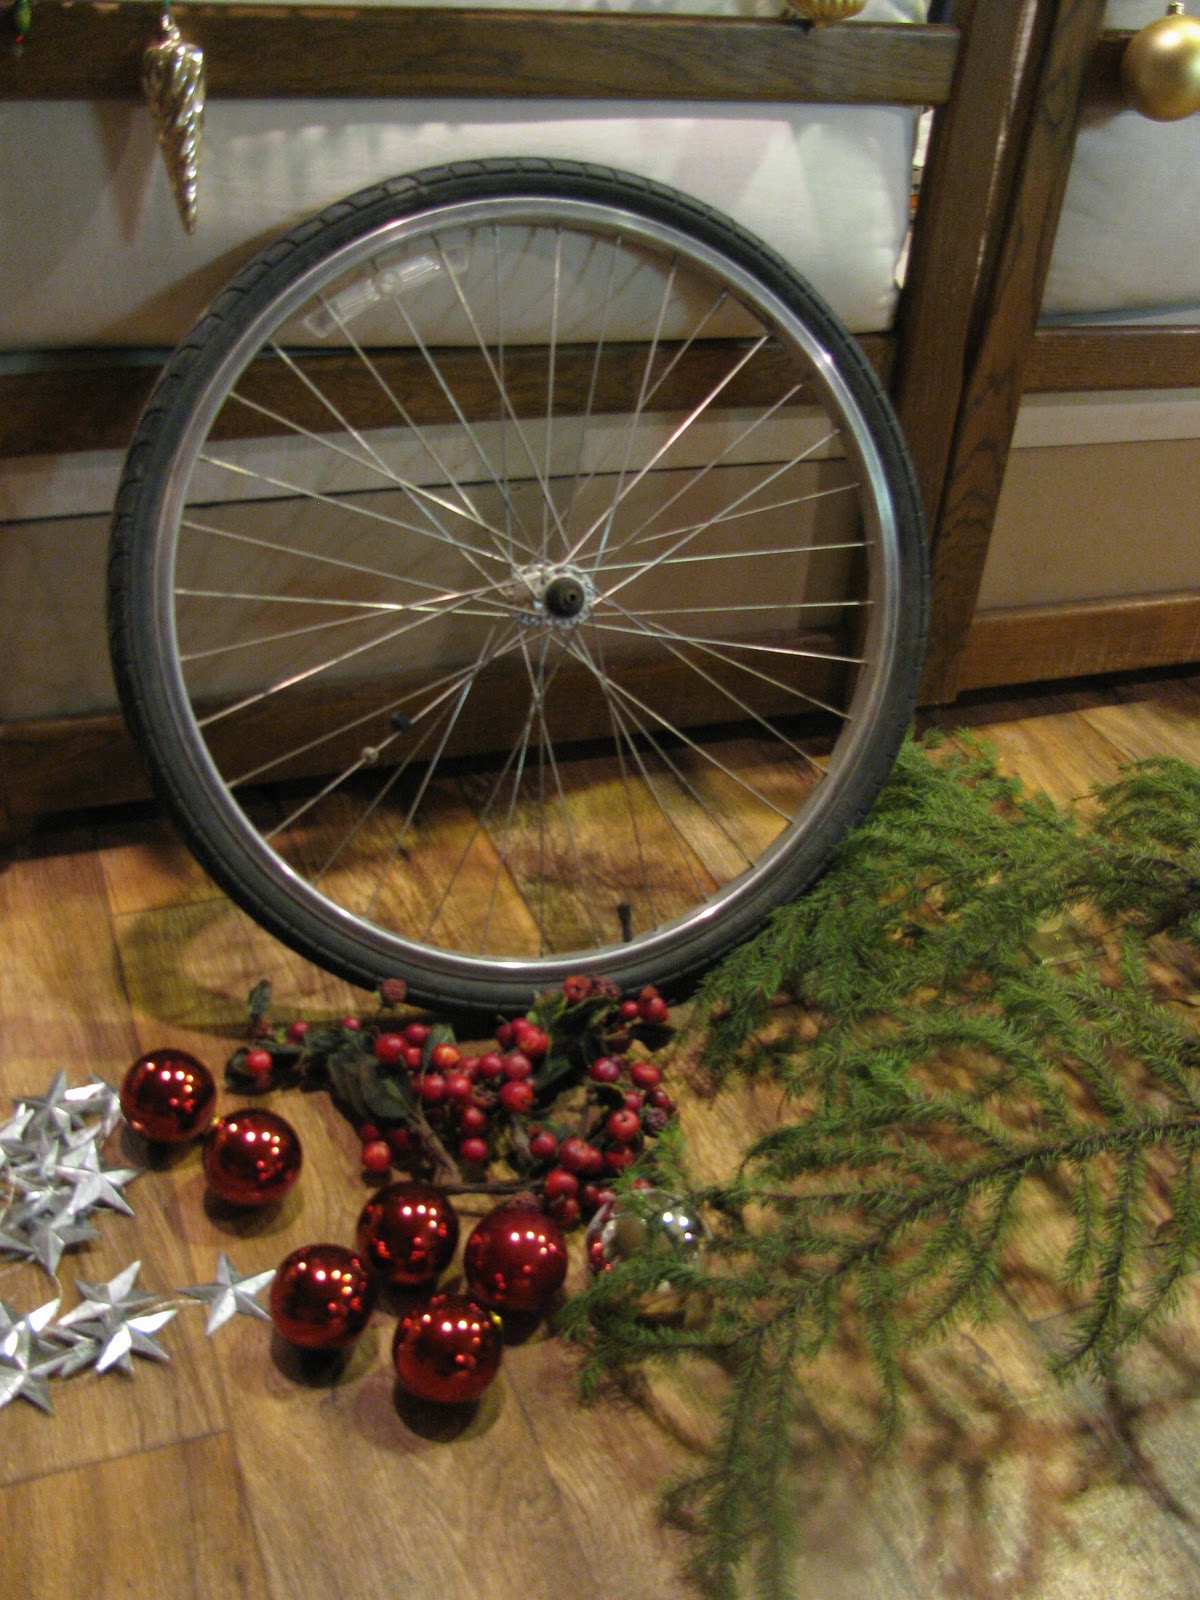 DIY 4 Wheel Bike http://www.bike-bliss.com/2012/12/my-diy-bike-wheel-wreath.html